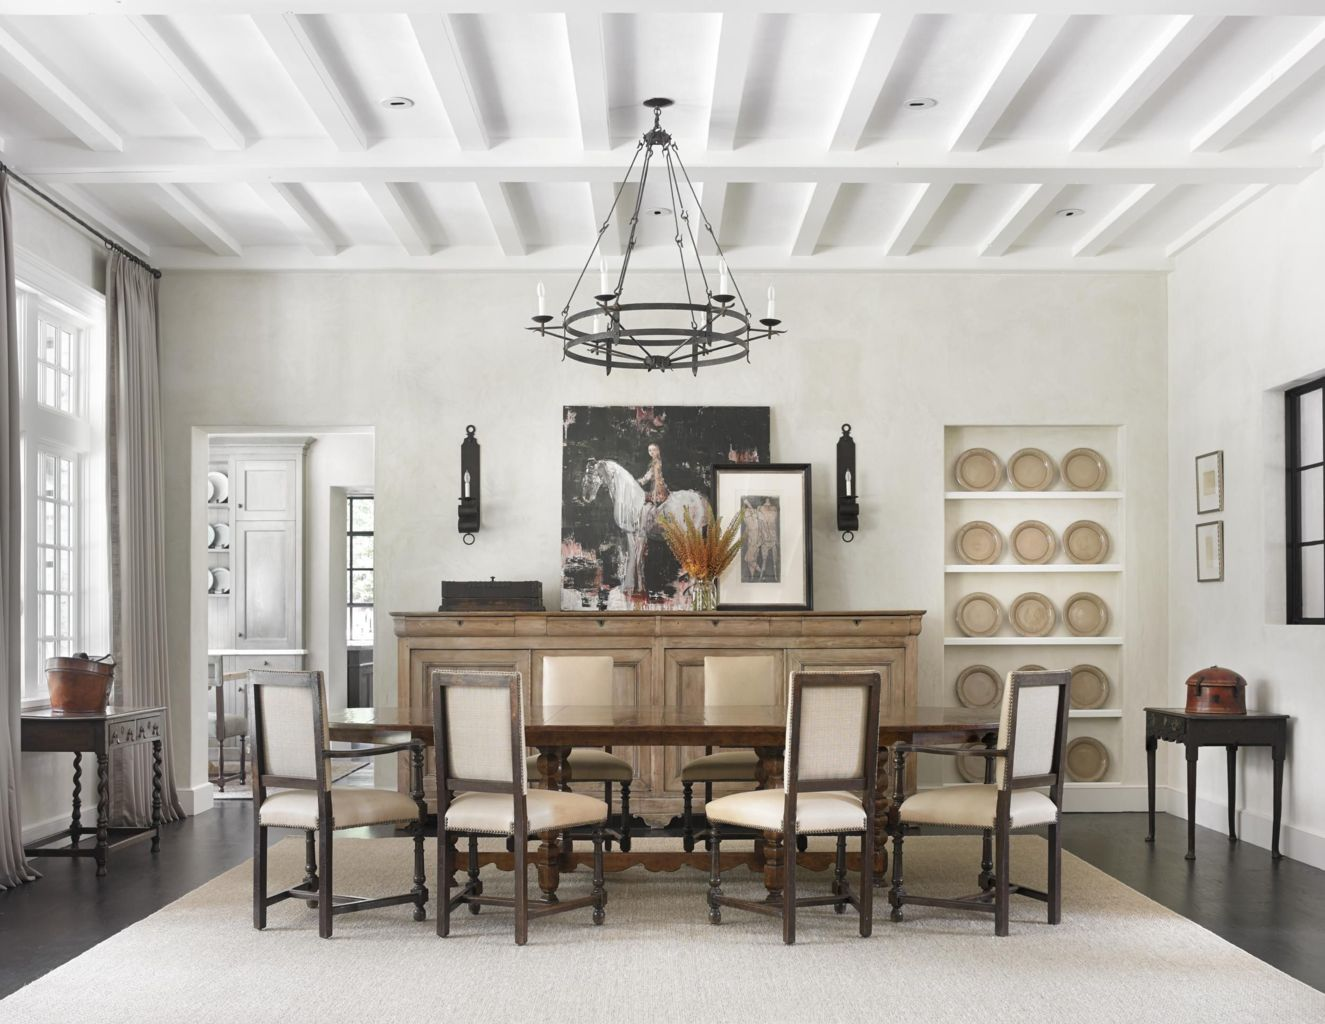 28 Vintage Dining Room Chandeliers Showing Dramatic Updates ...